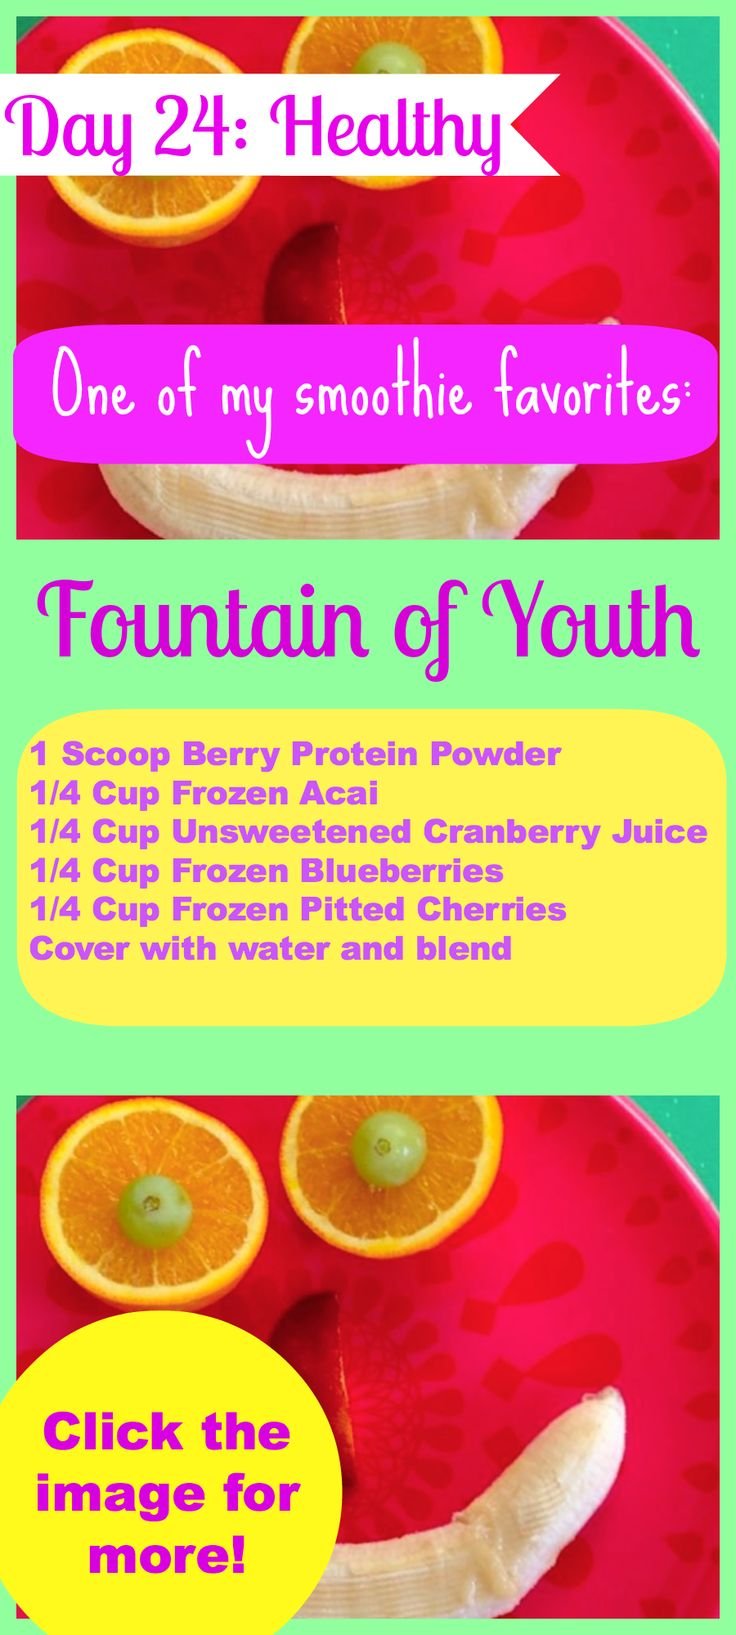 Whole Food Smoothie Recipe- here is one of my favorites! Click the image for more!